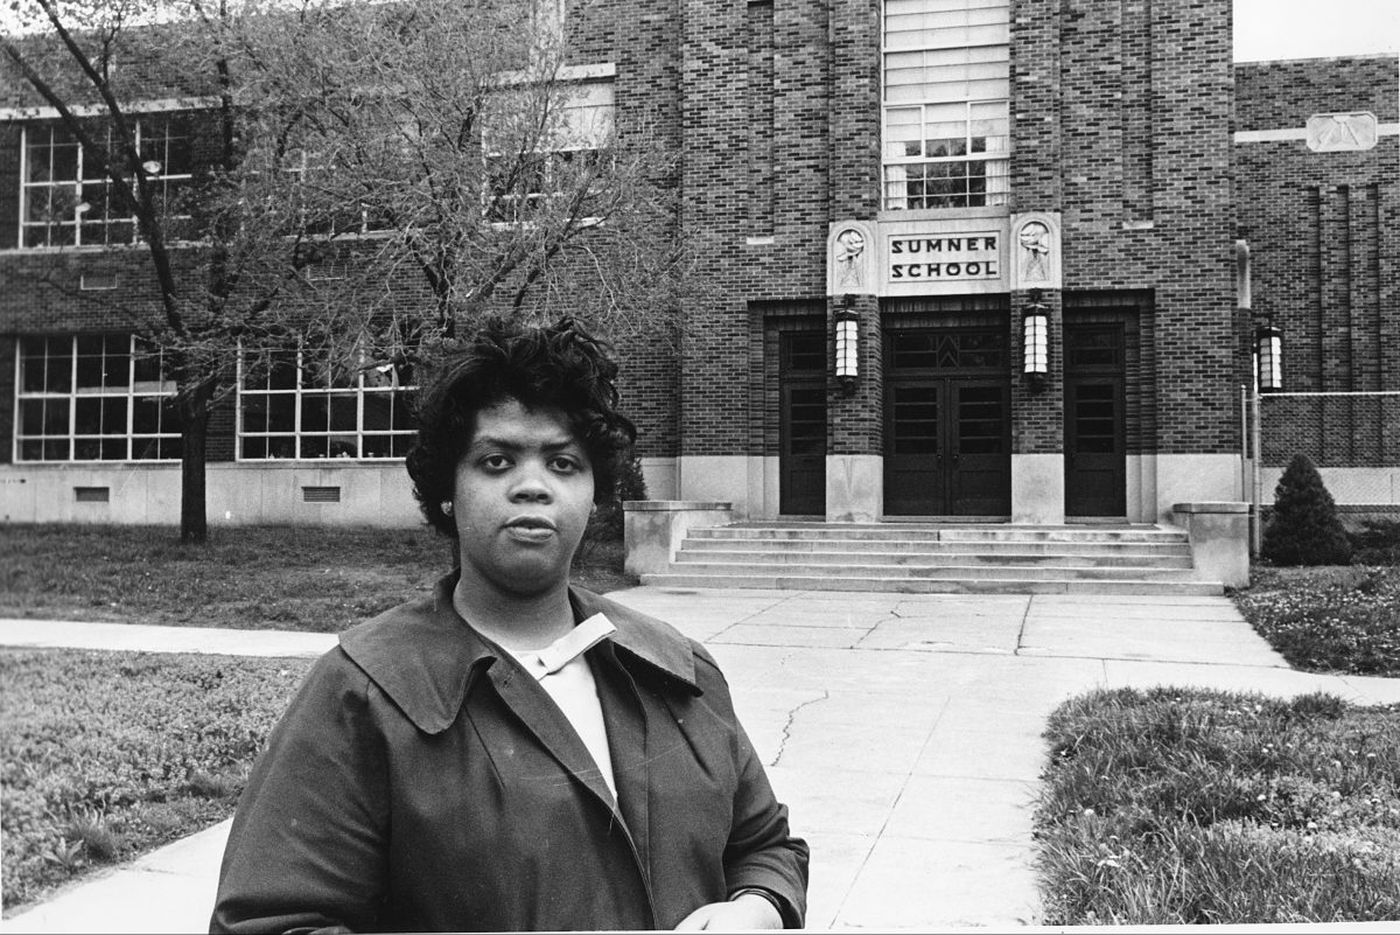 In life, Linda Brown was a civil rights hero. In death, media misidentify her